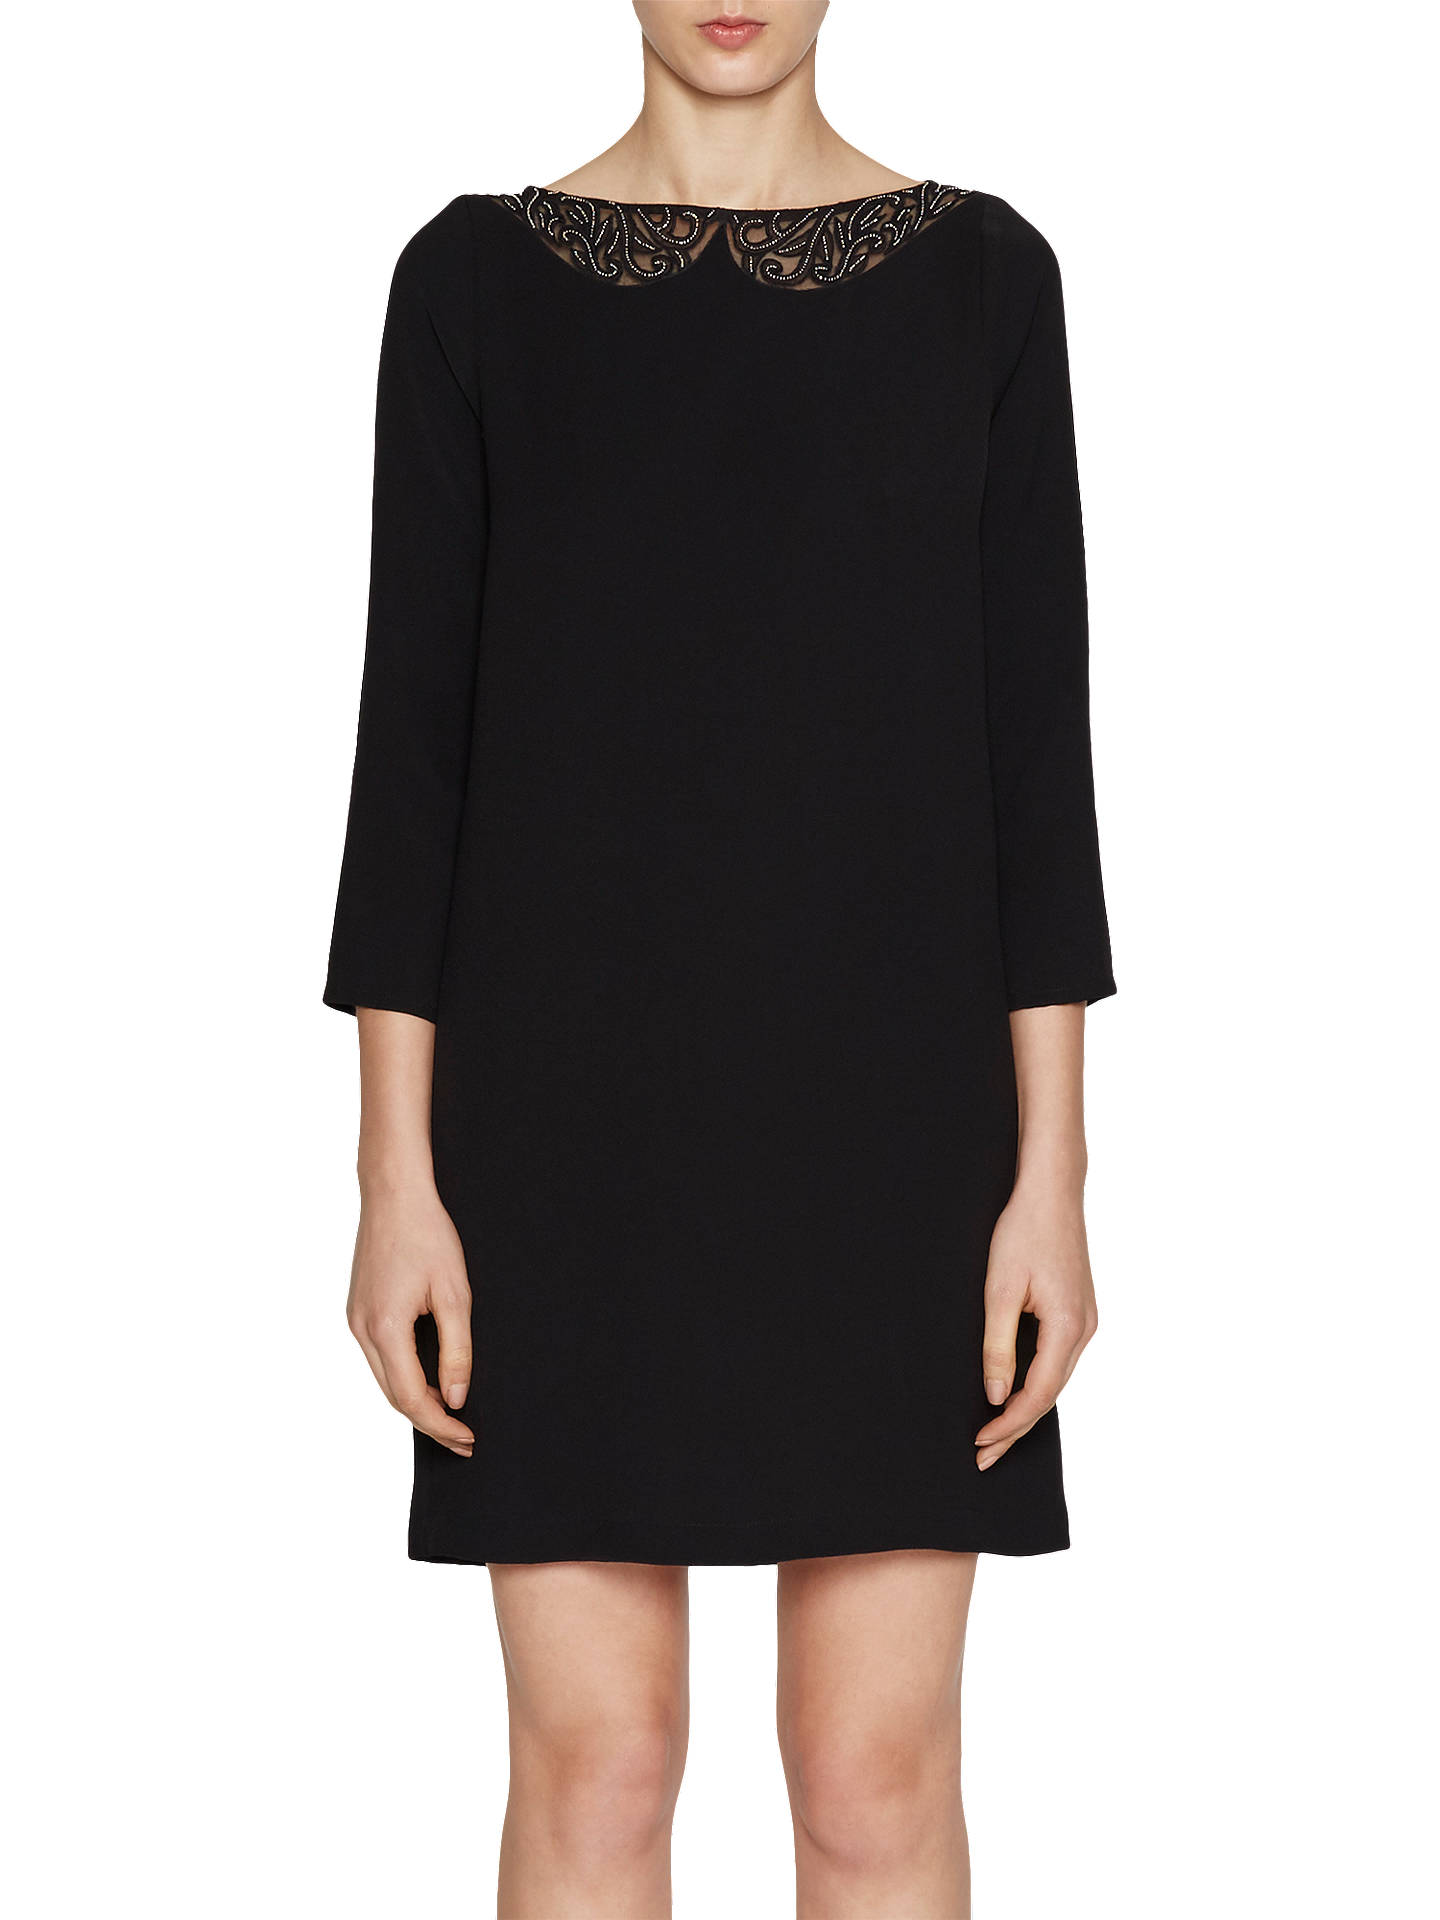 32aa5674450 Buy French Connection Eliza Crepe Tunic Dress, Black, 6 Online at  johnlewis.com ...